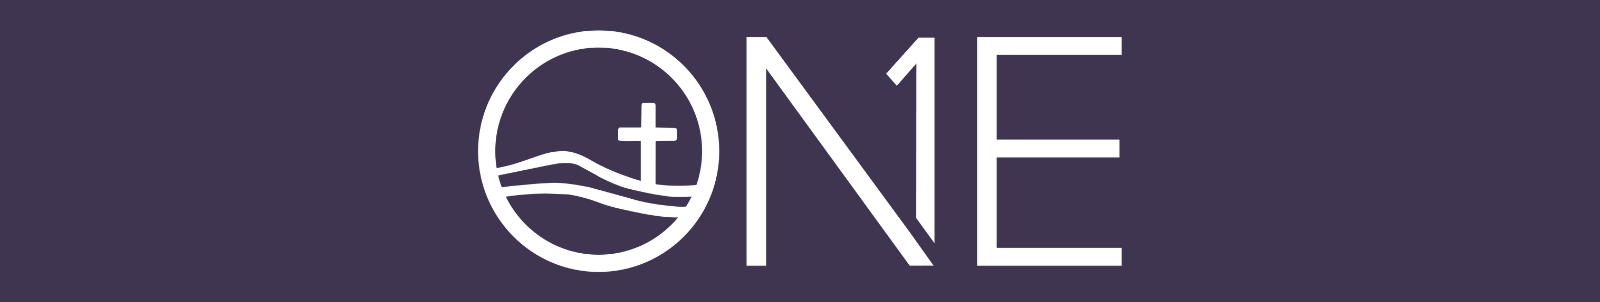 One Sermon Banner.png